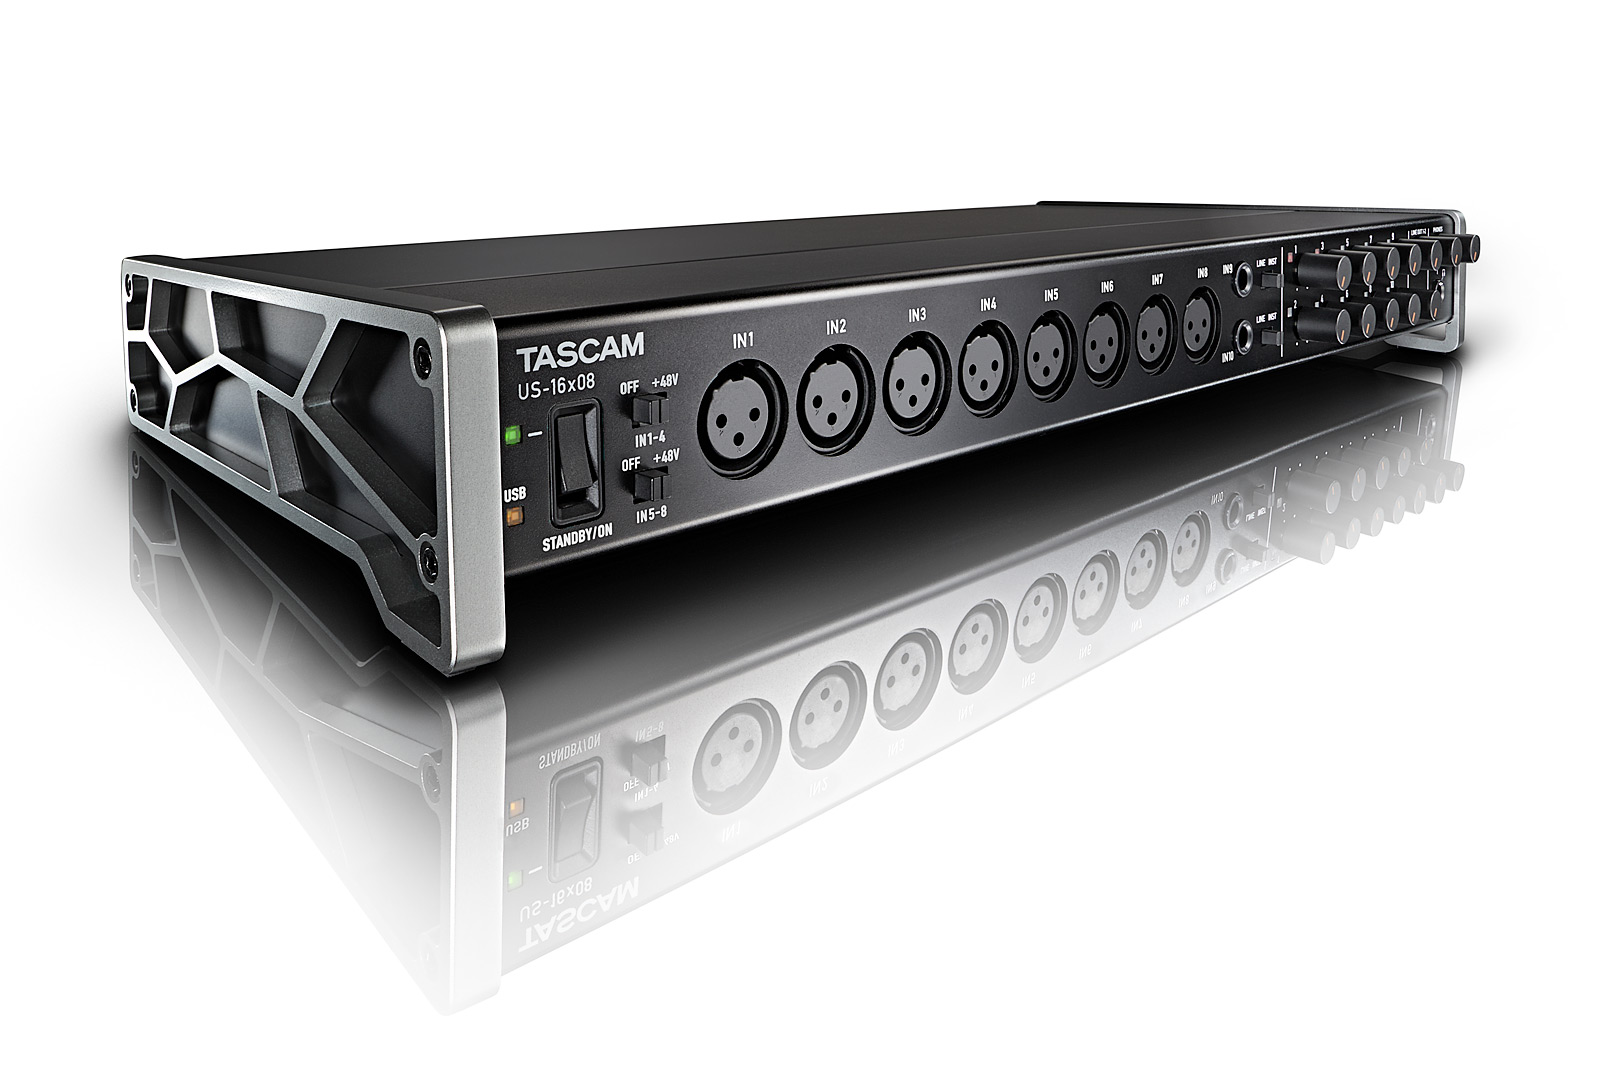 Tascam US-16x08 USB 2.0 Audio interface